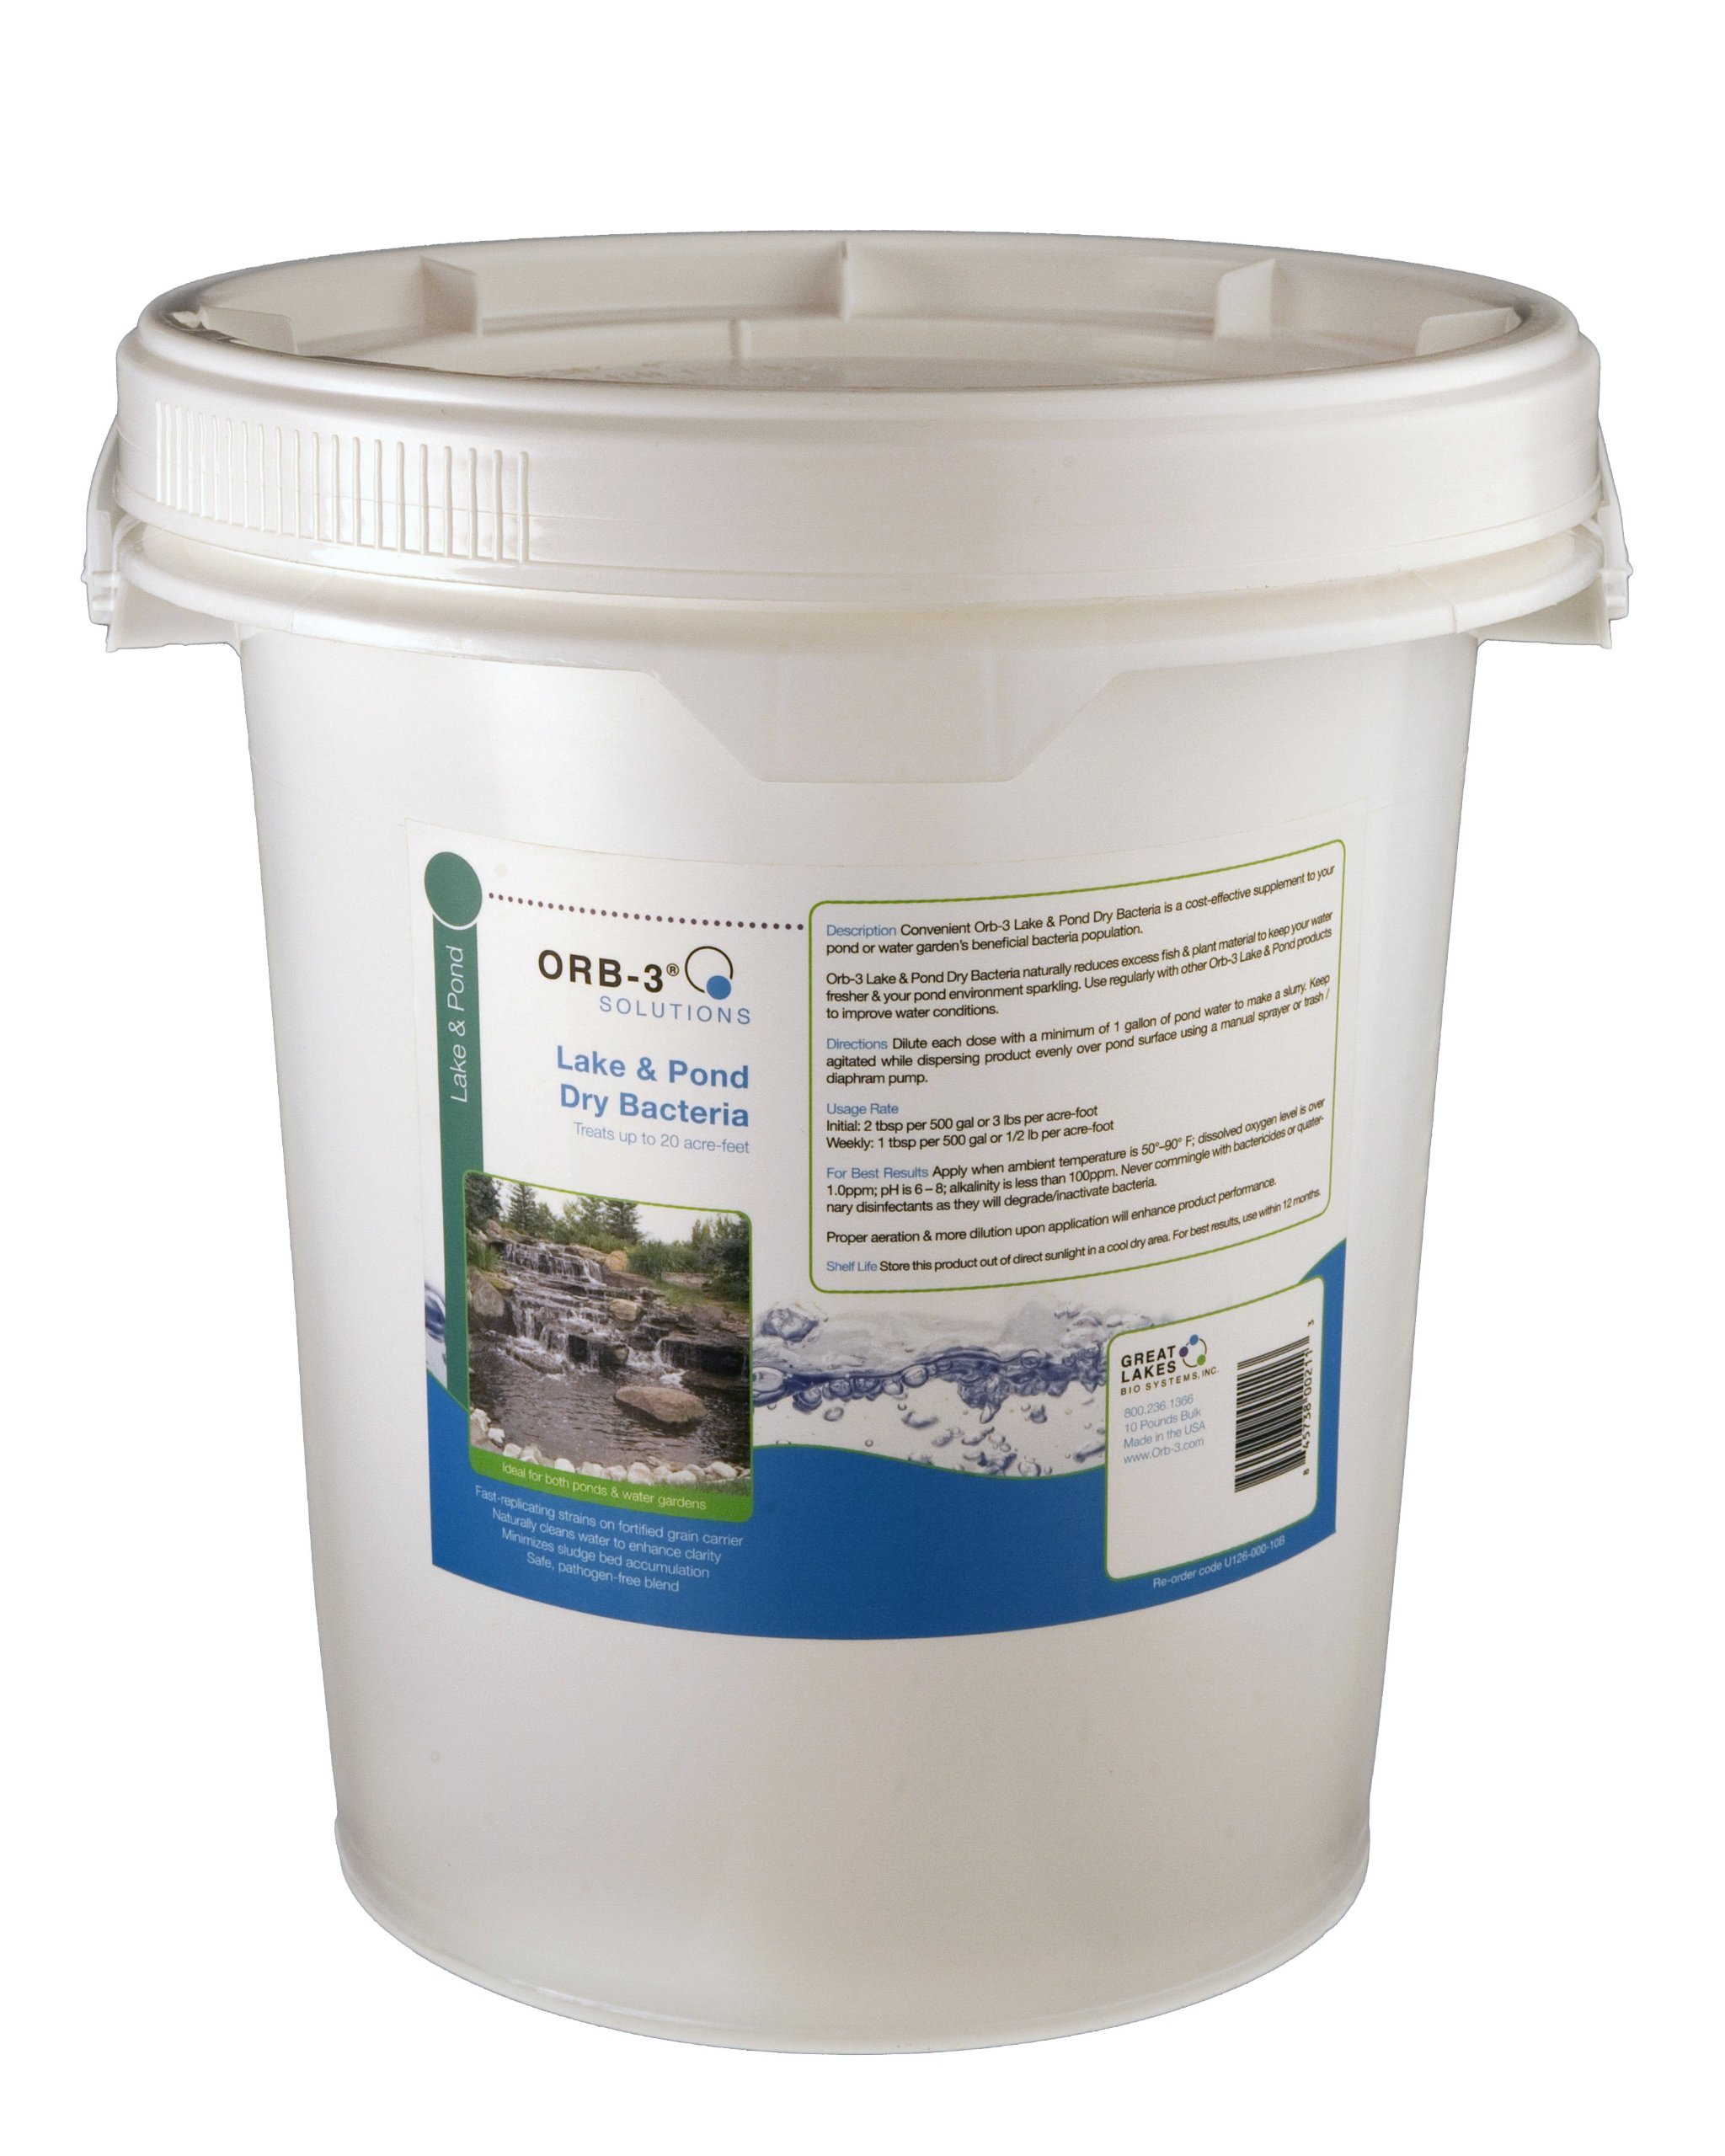 Orb-3 Lake and Pond Dry Bacteria Pail Bulk, 10-Pound by Orb-3